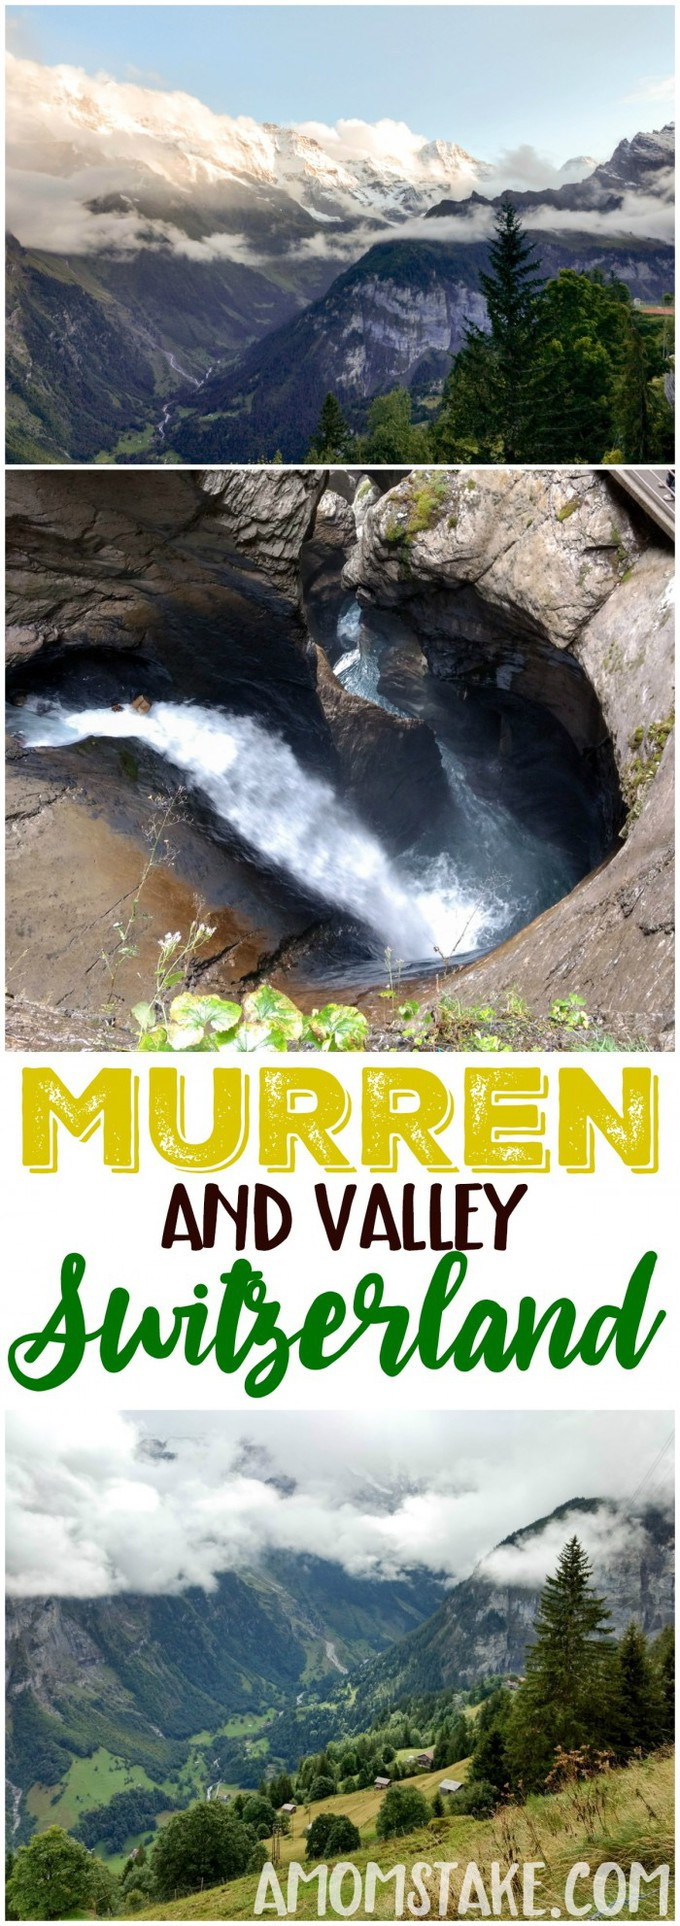 Travel to the incredible and breathtaking Murren Switzerland - part of our Western Europe road trip travel series. #ravel #trip #vacation #Europe #Switzerland #Murren #getoutdoors #travelEurope #roadtrip